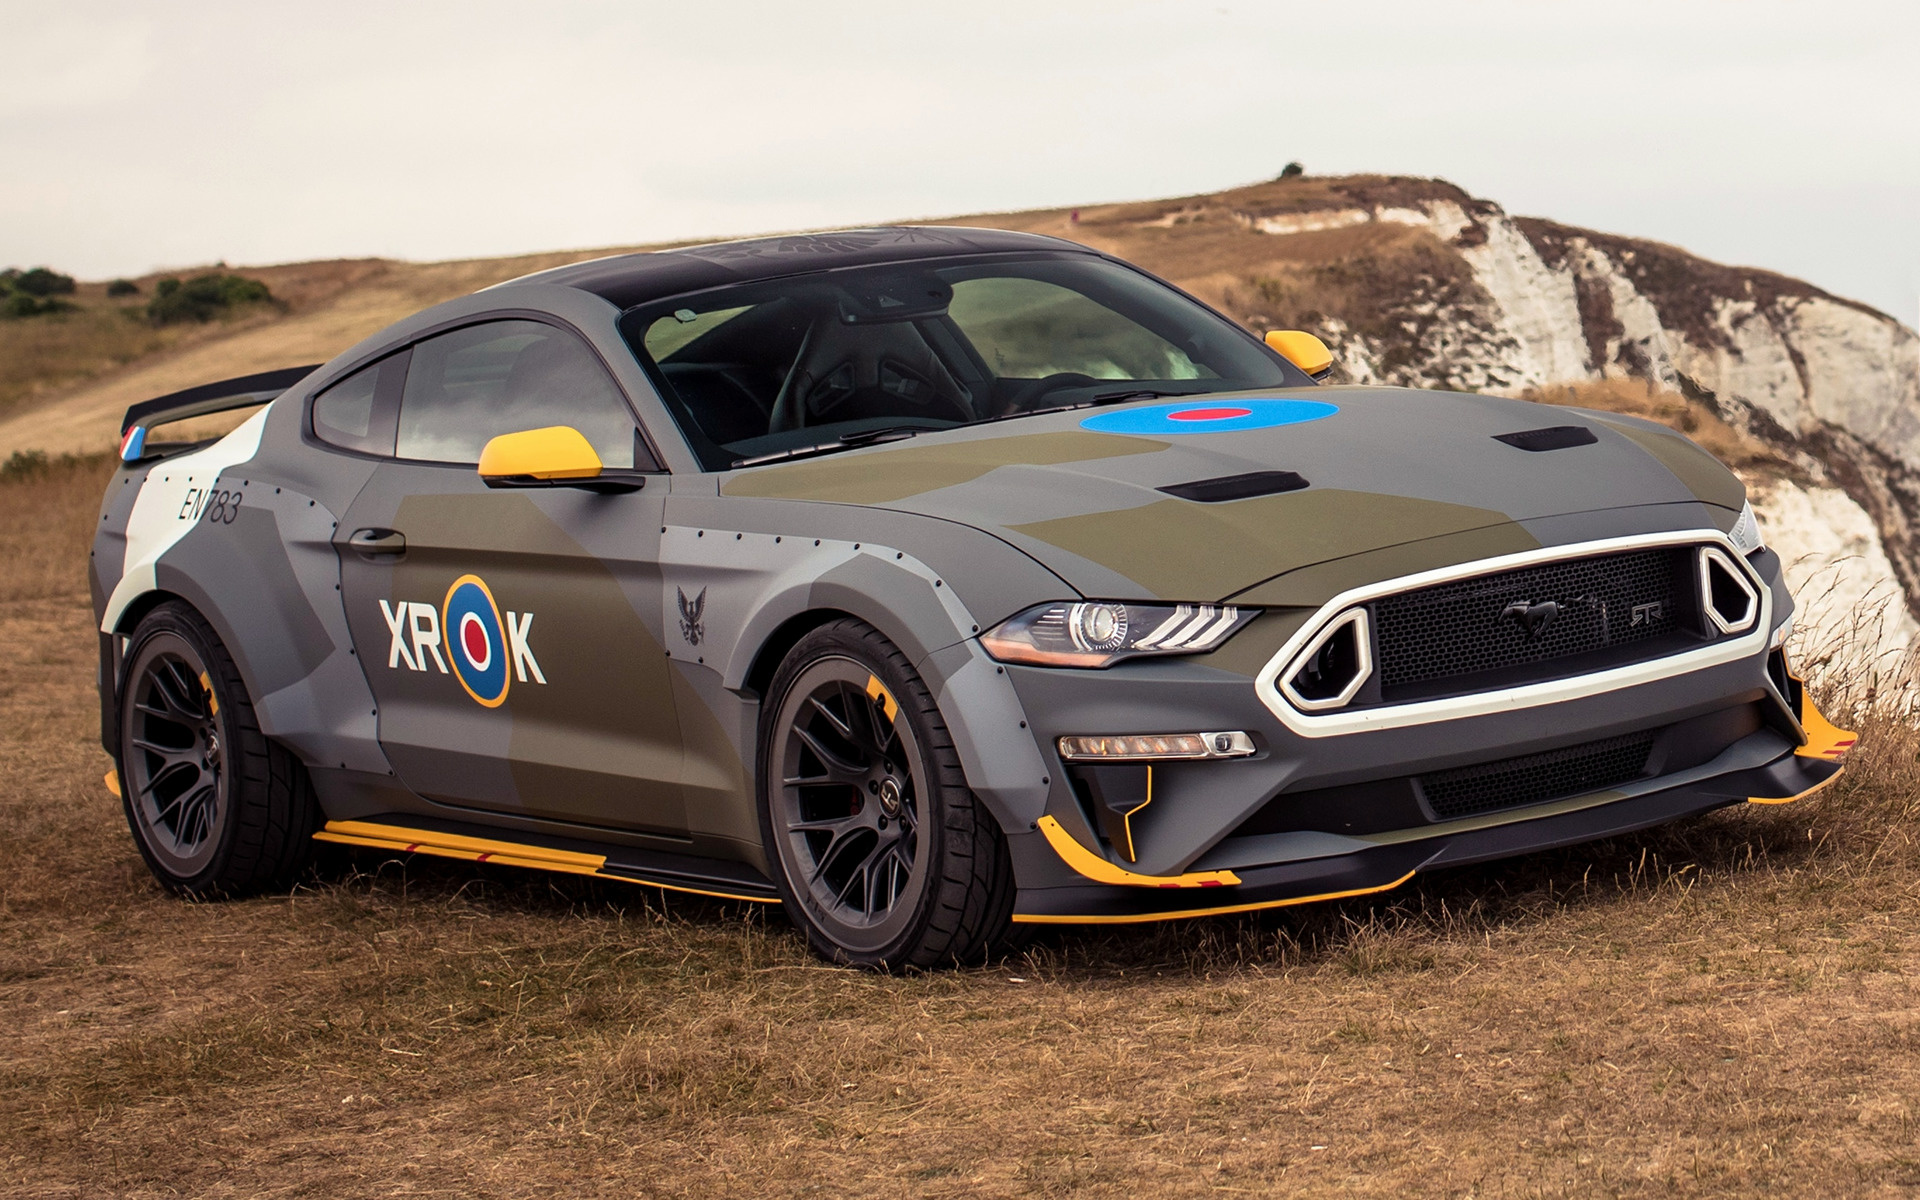 Ford Eagle Squadron Mustang GT (2018) Wallpapers and HD ...